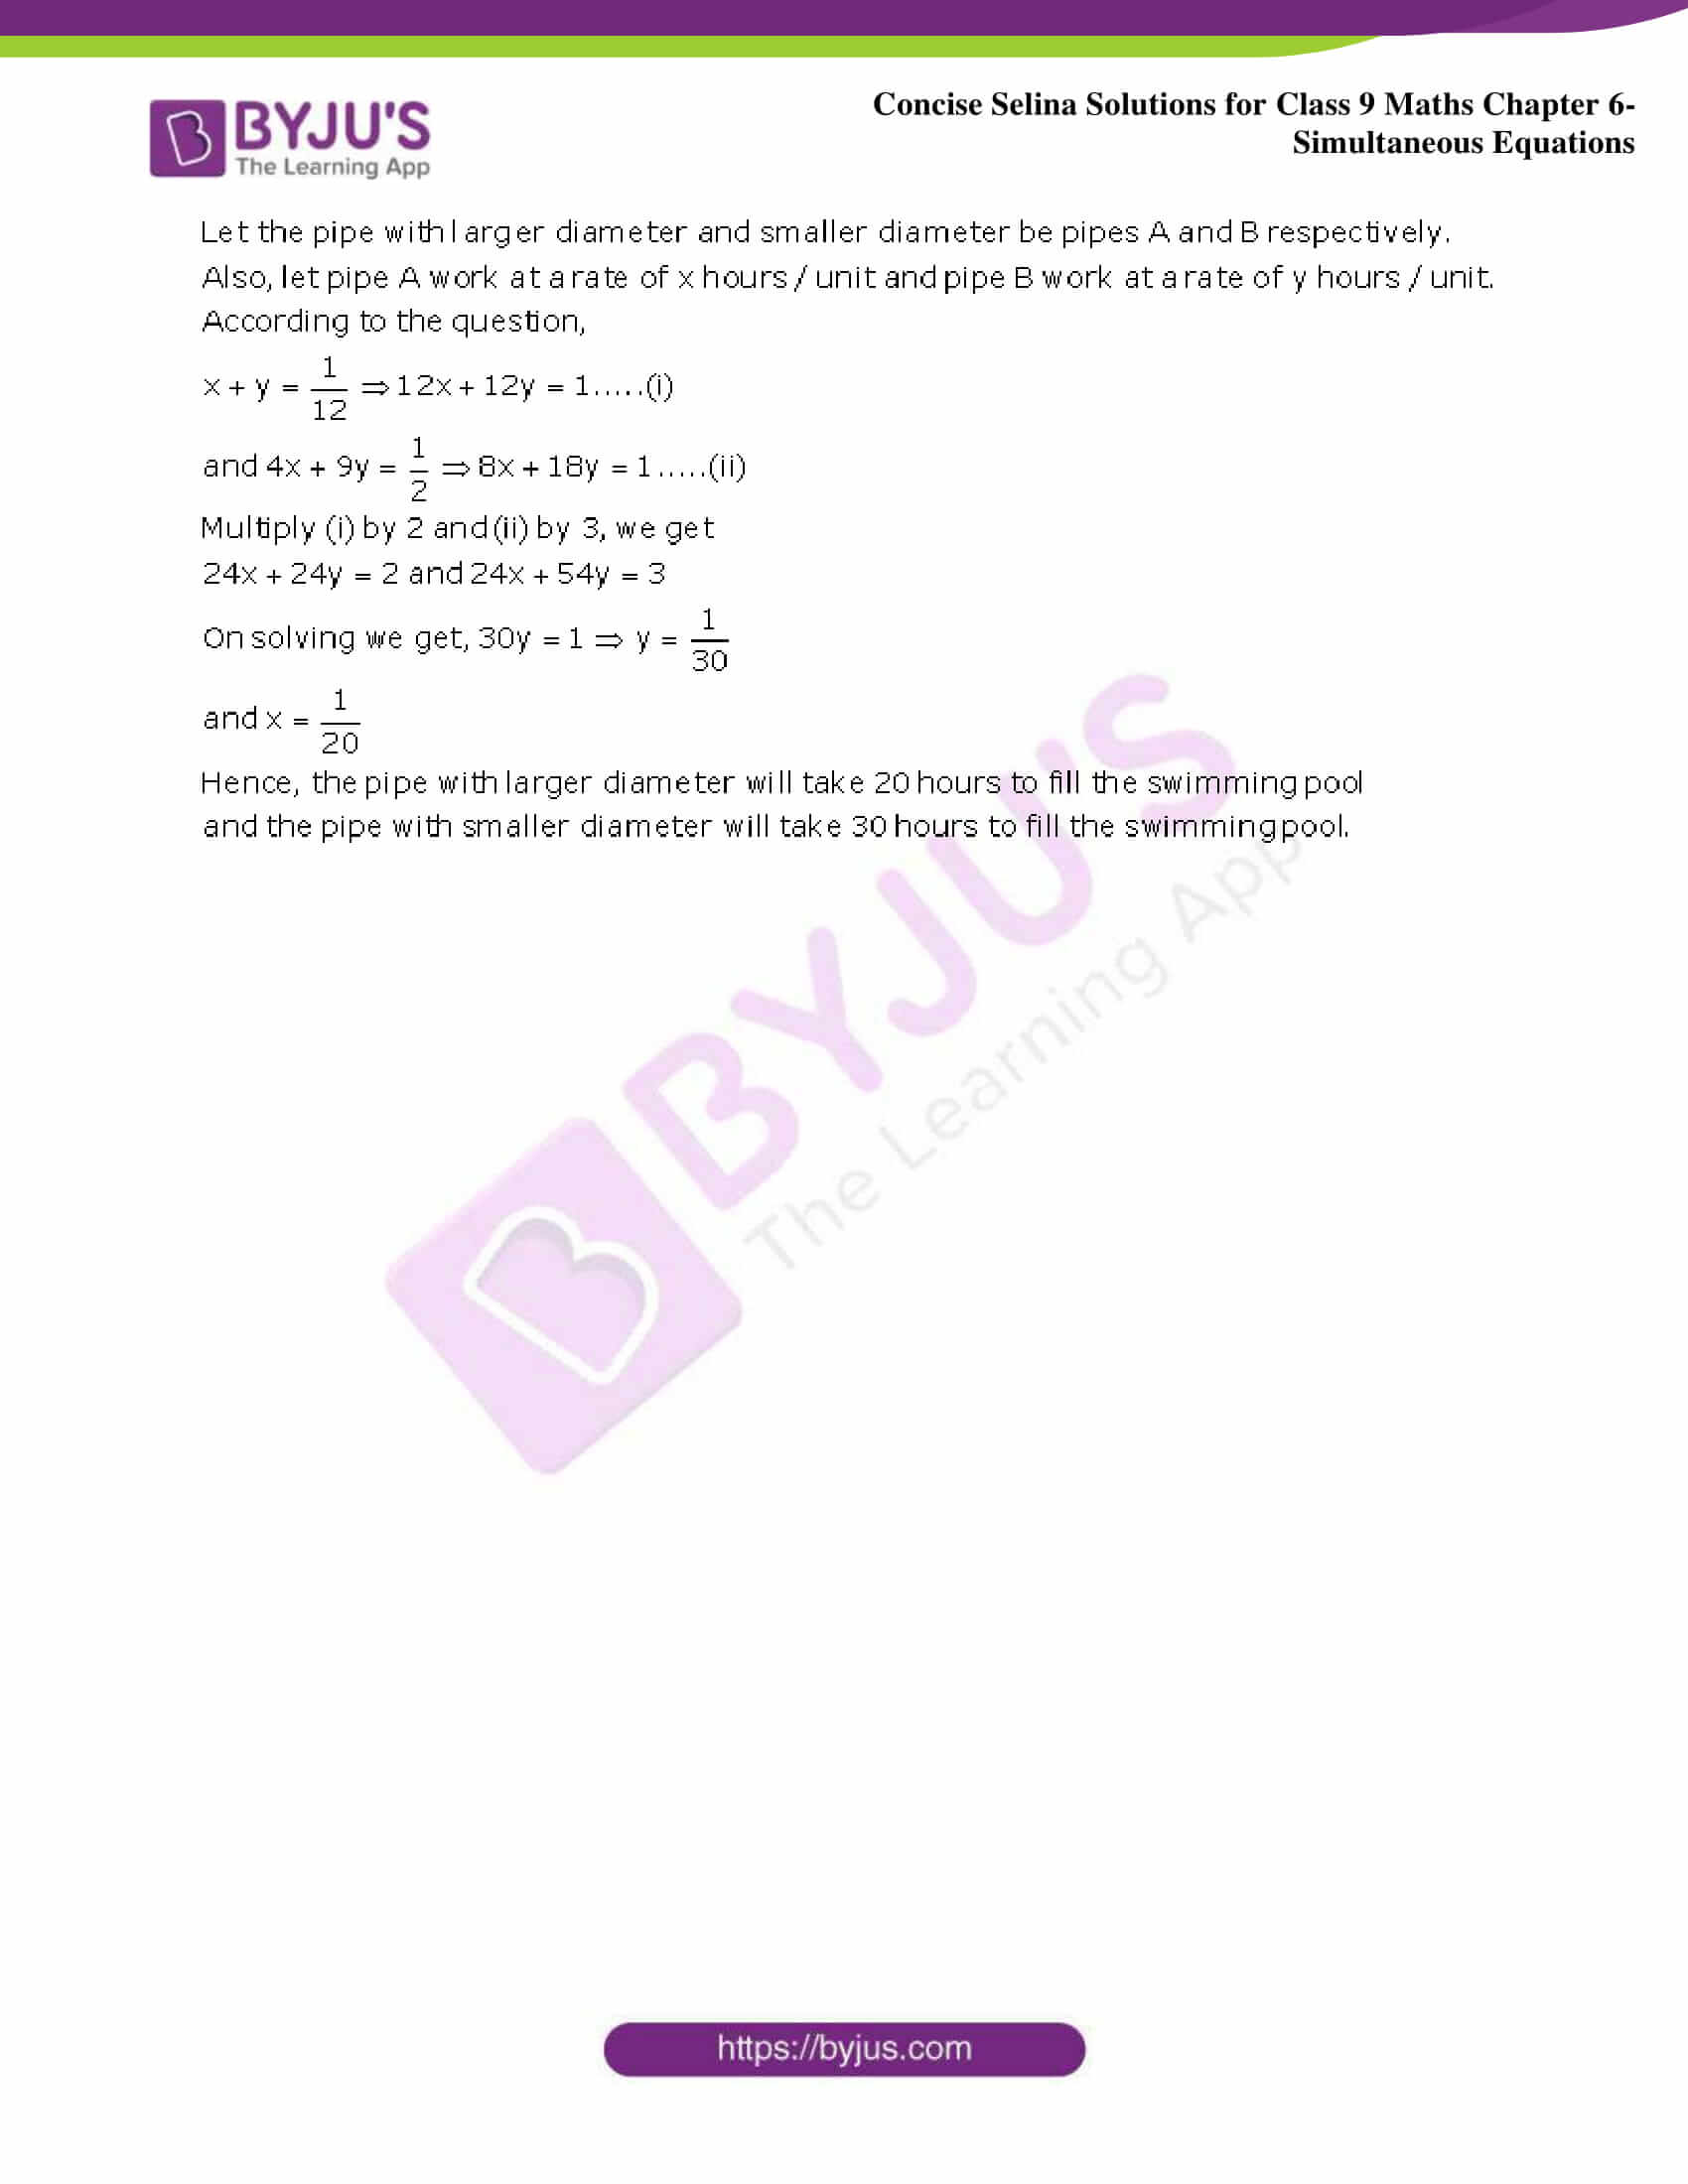 Selina Solutions Class 9 Maths Chapter 6 Simultaneous Equations part 60